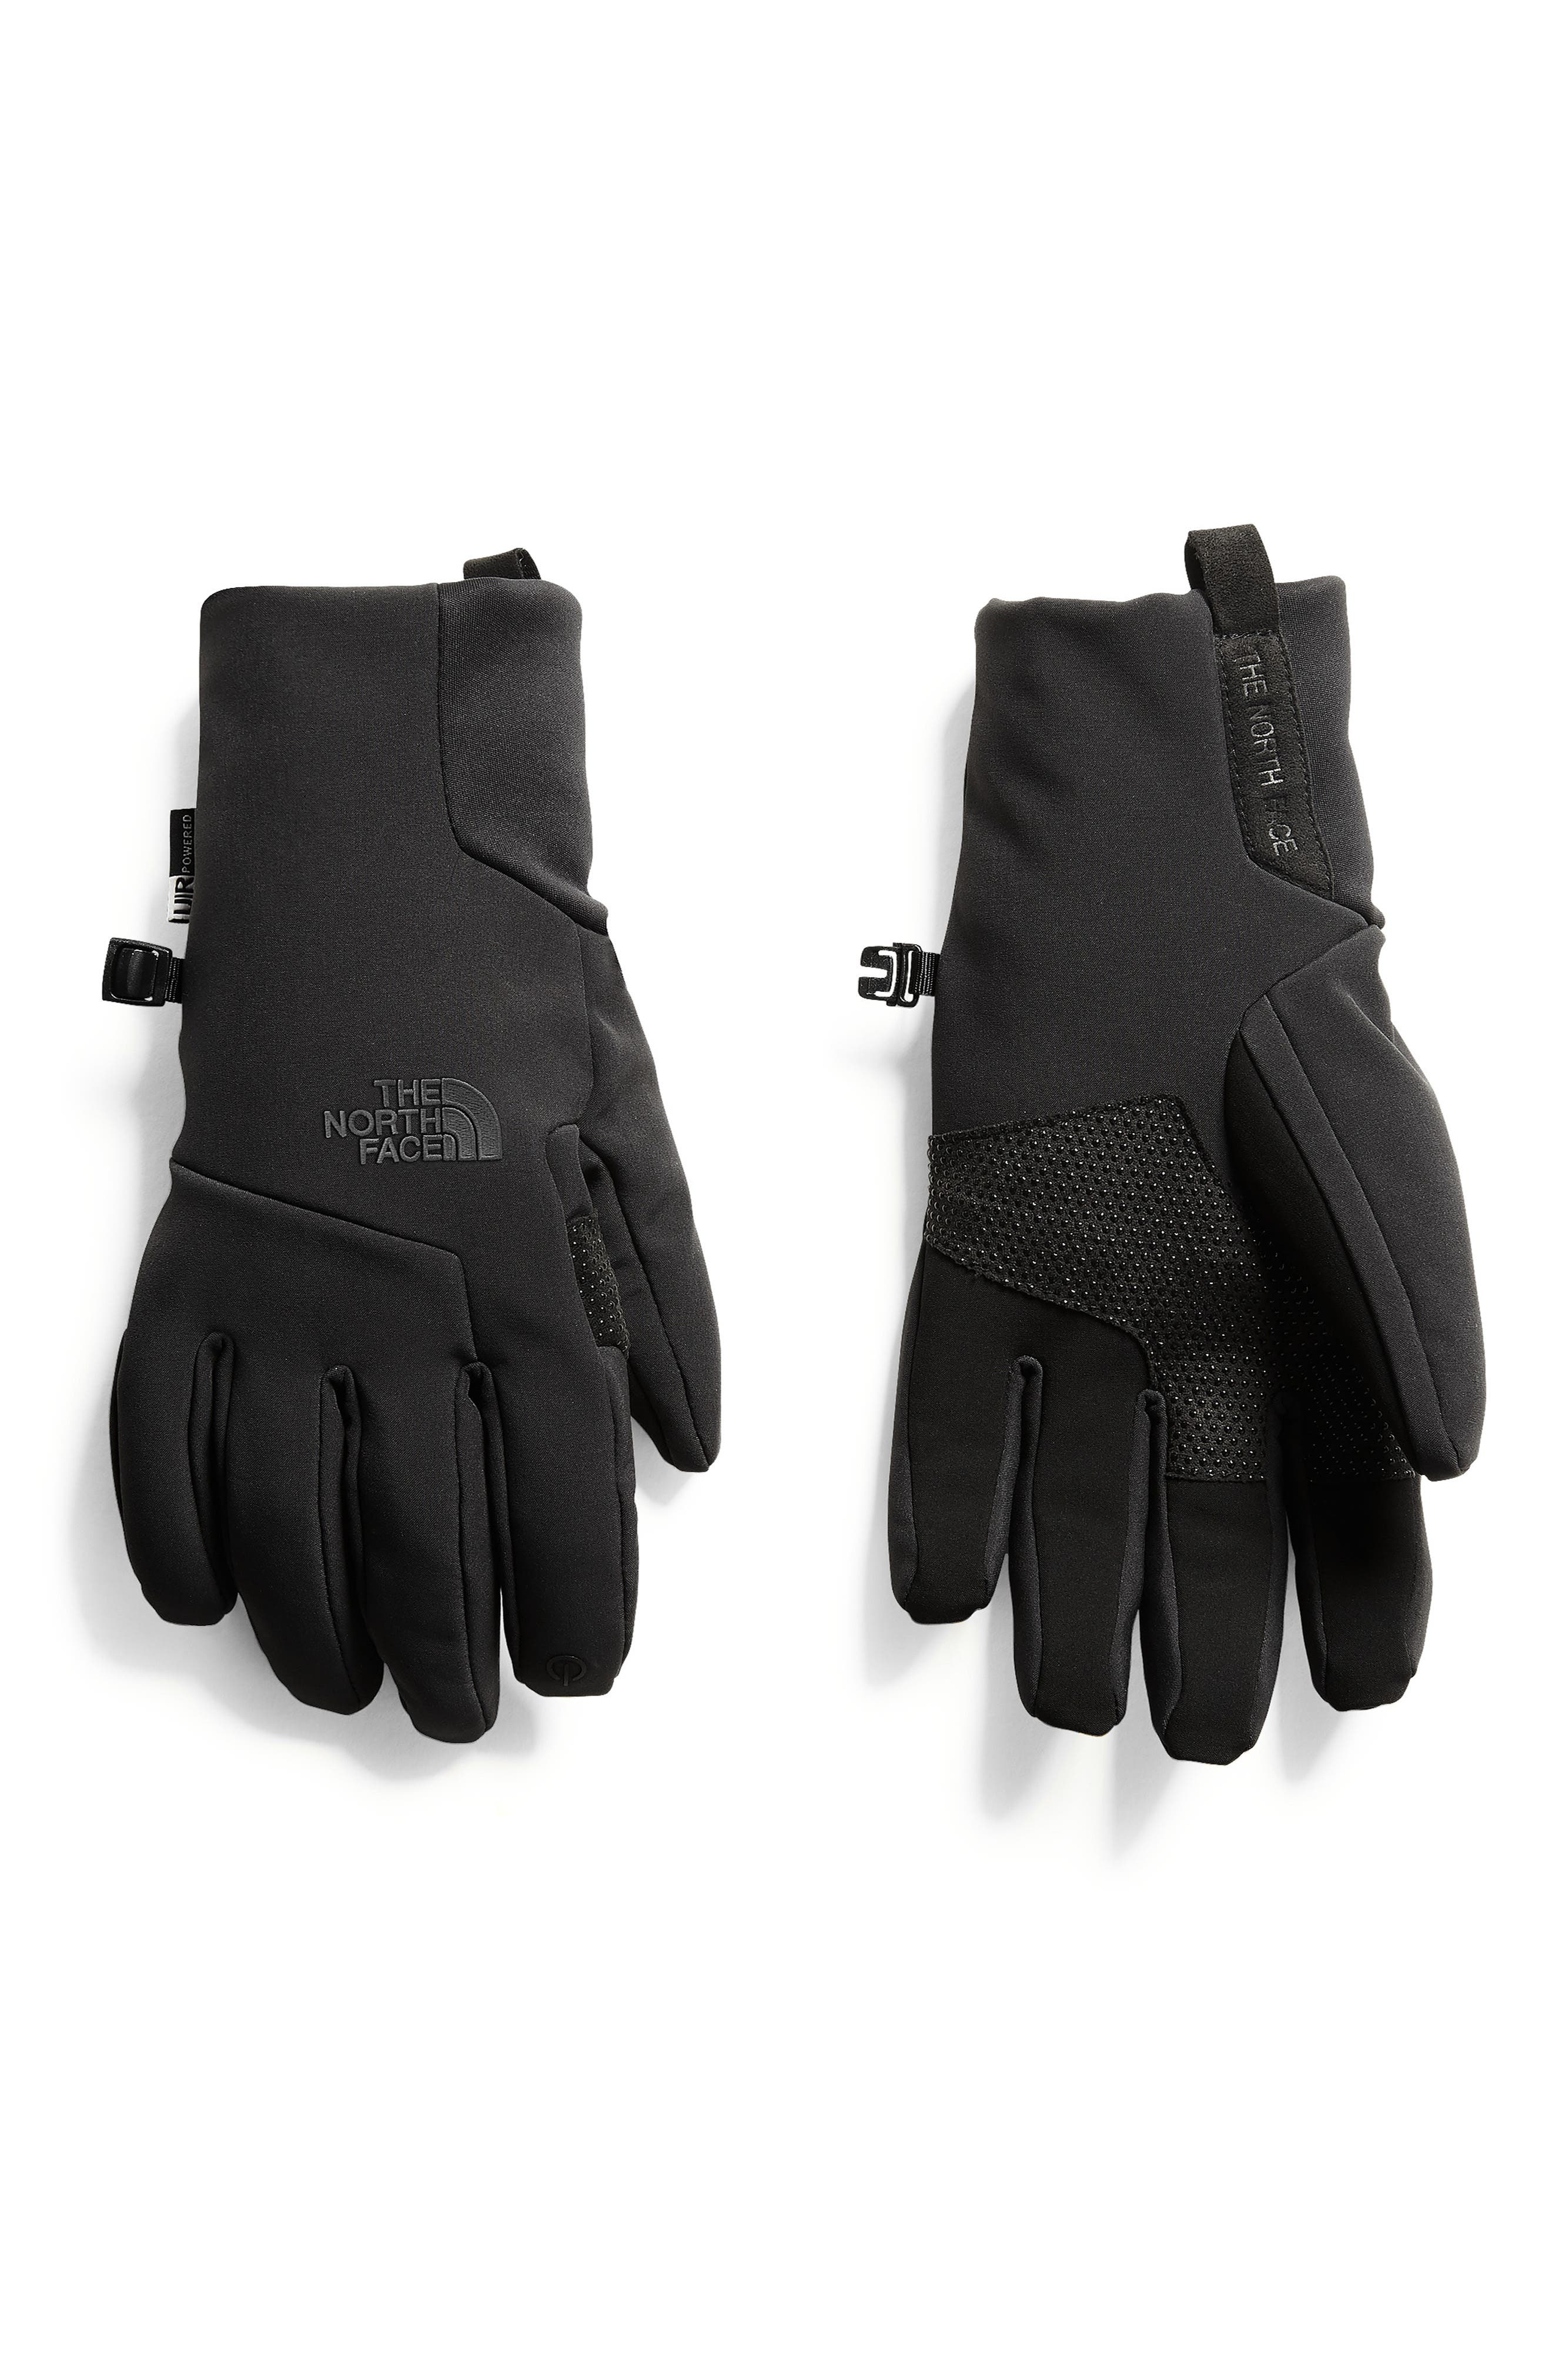 THE NORTH FACE, Apex Etip<sup>™</sup> Tech Gloves, Main thumbnail 1, color, TNF BLACK